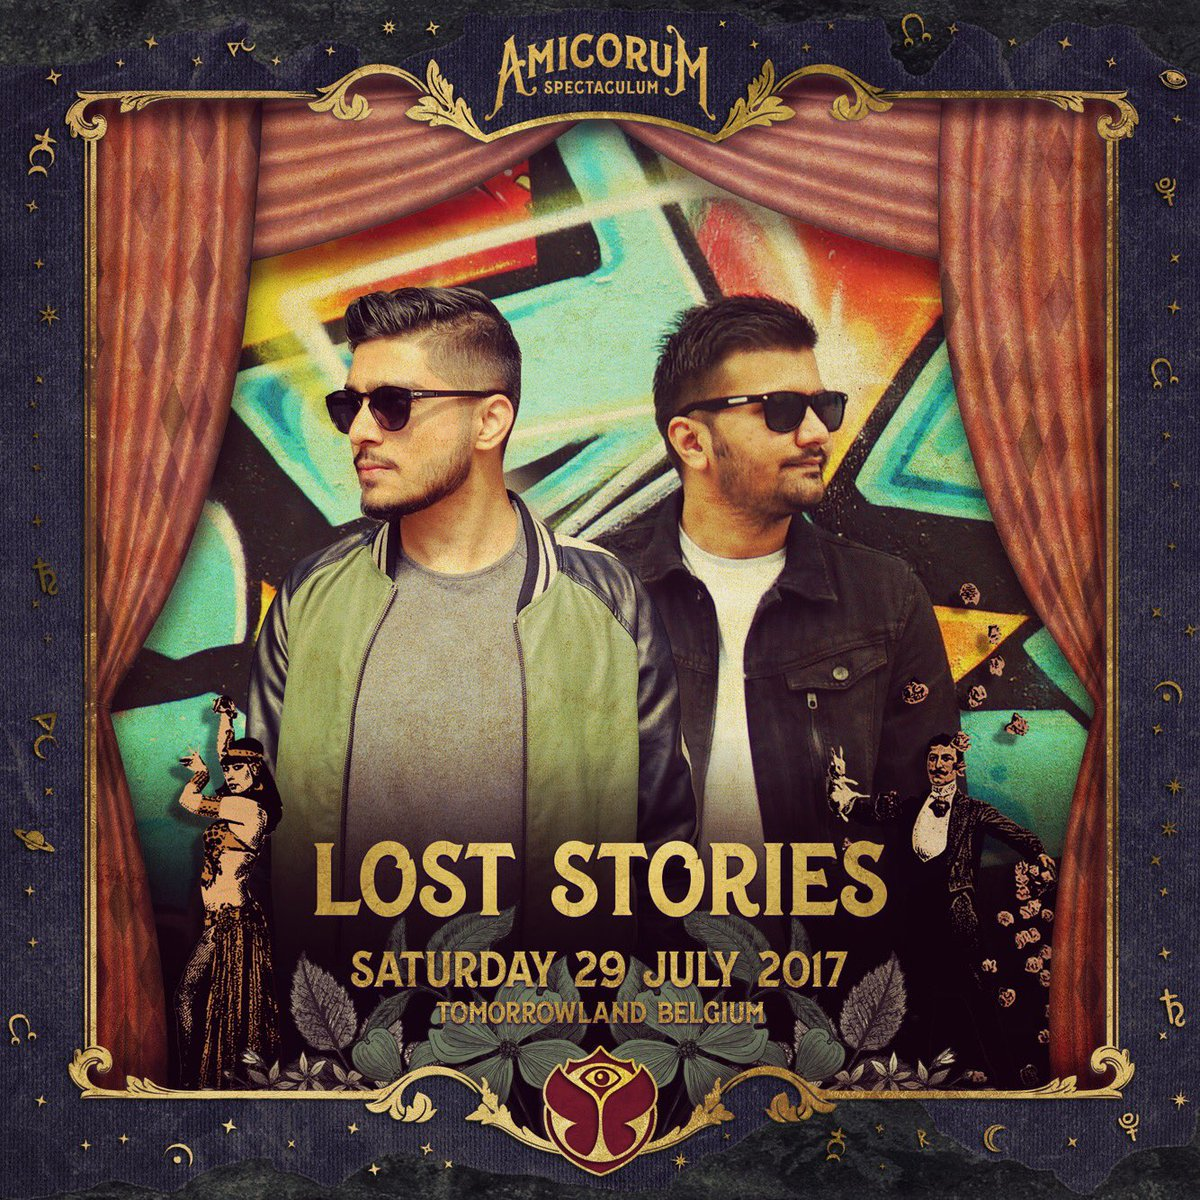 See you at @tomorrowland 2017! #TomorrowlandStories #TakingIndiaToTheWorld #LostSquad https://t.co/gelCowYmo9